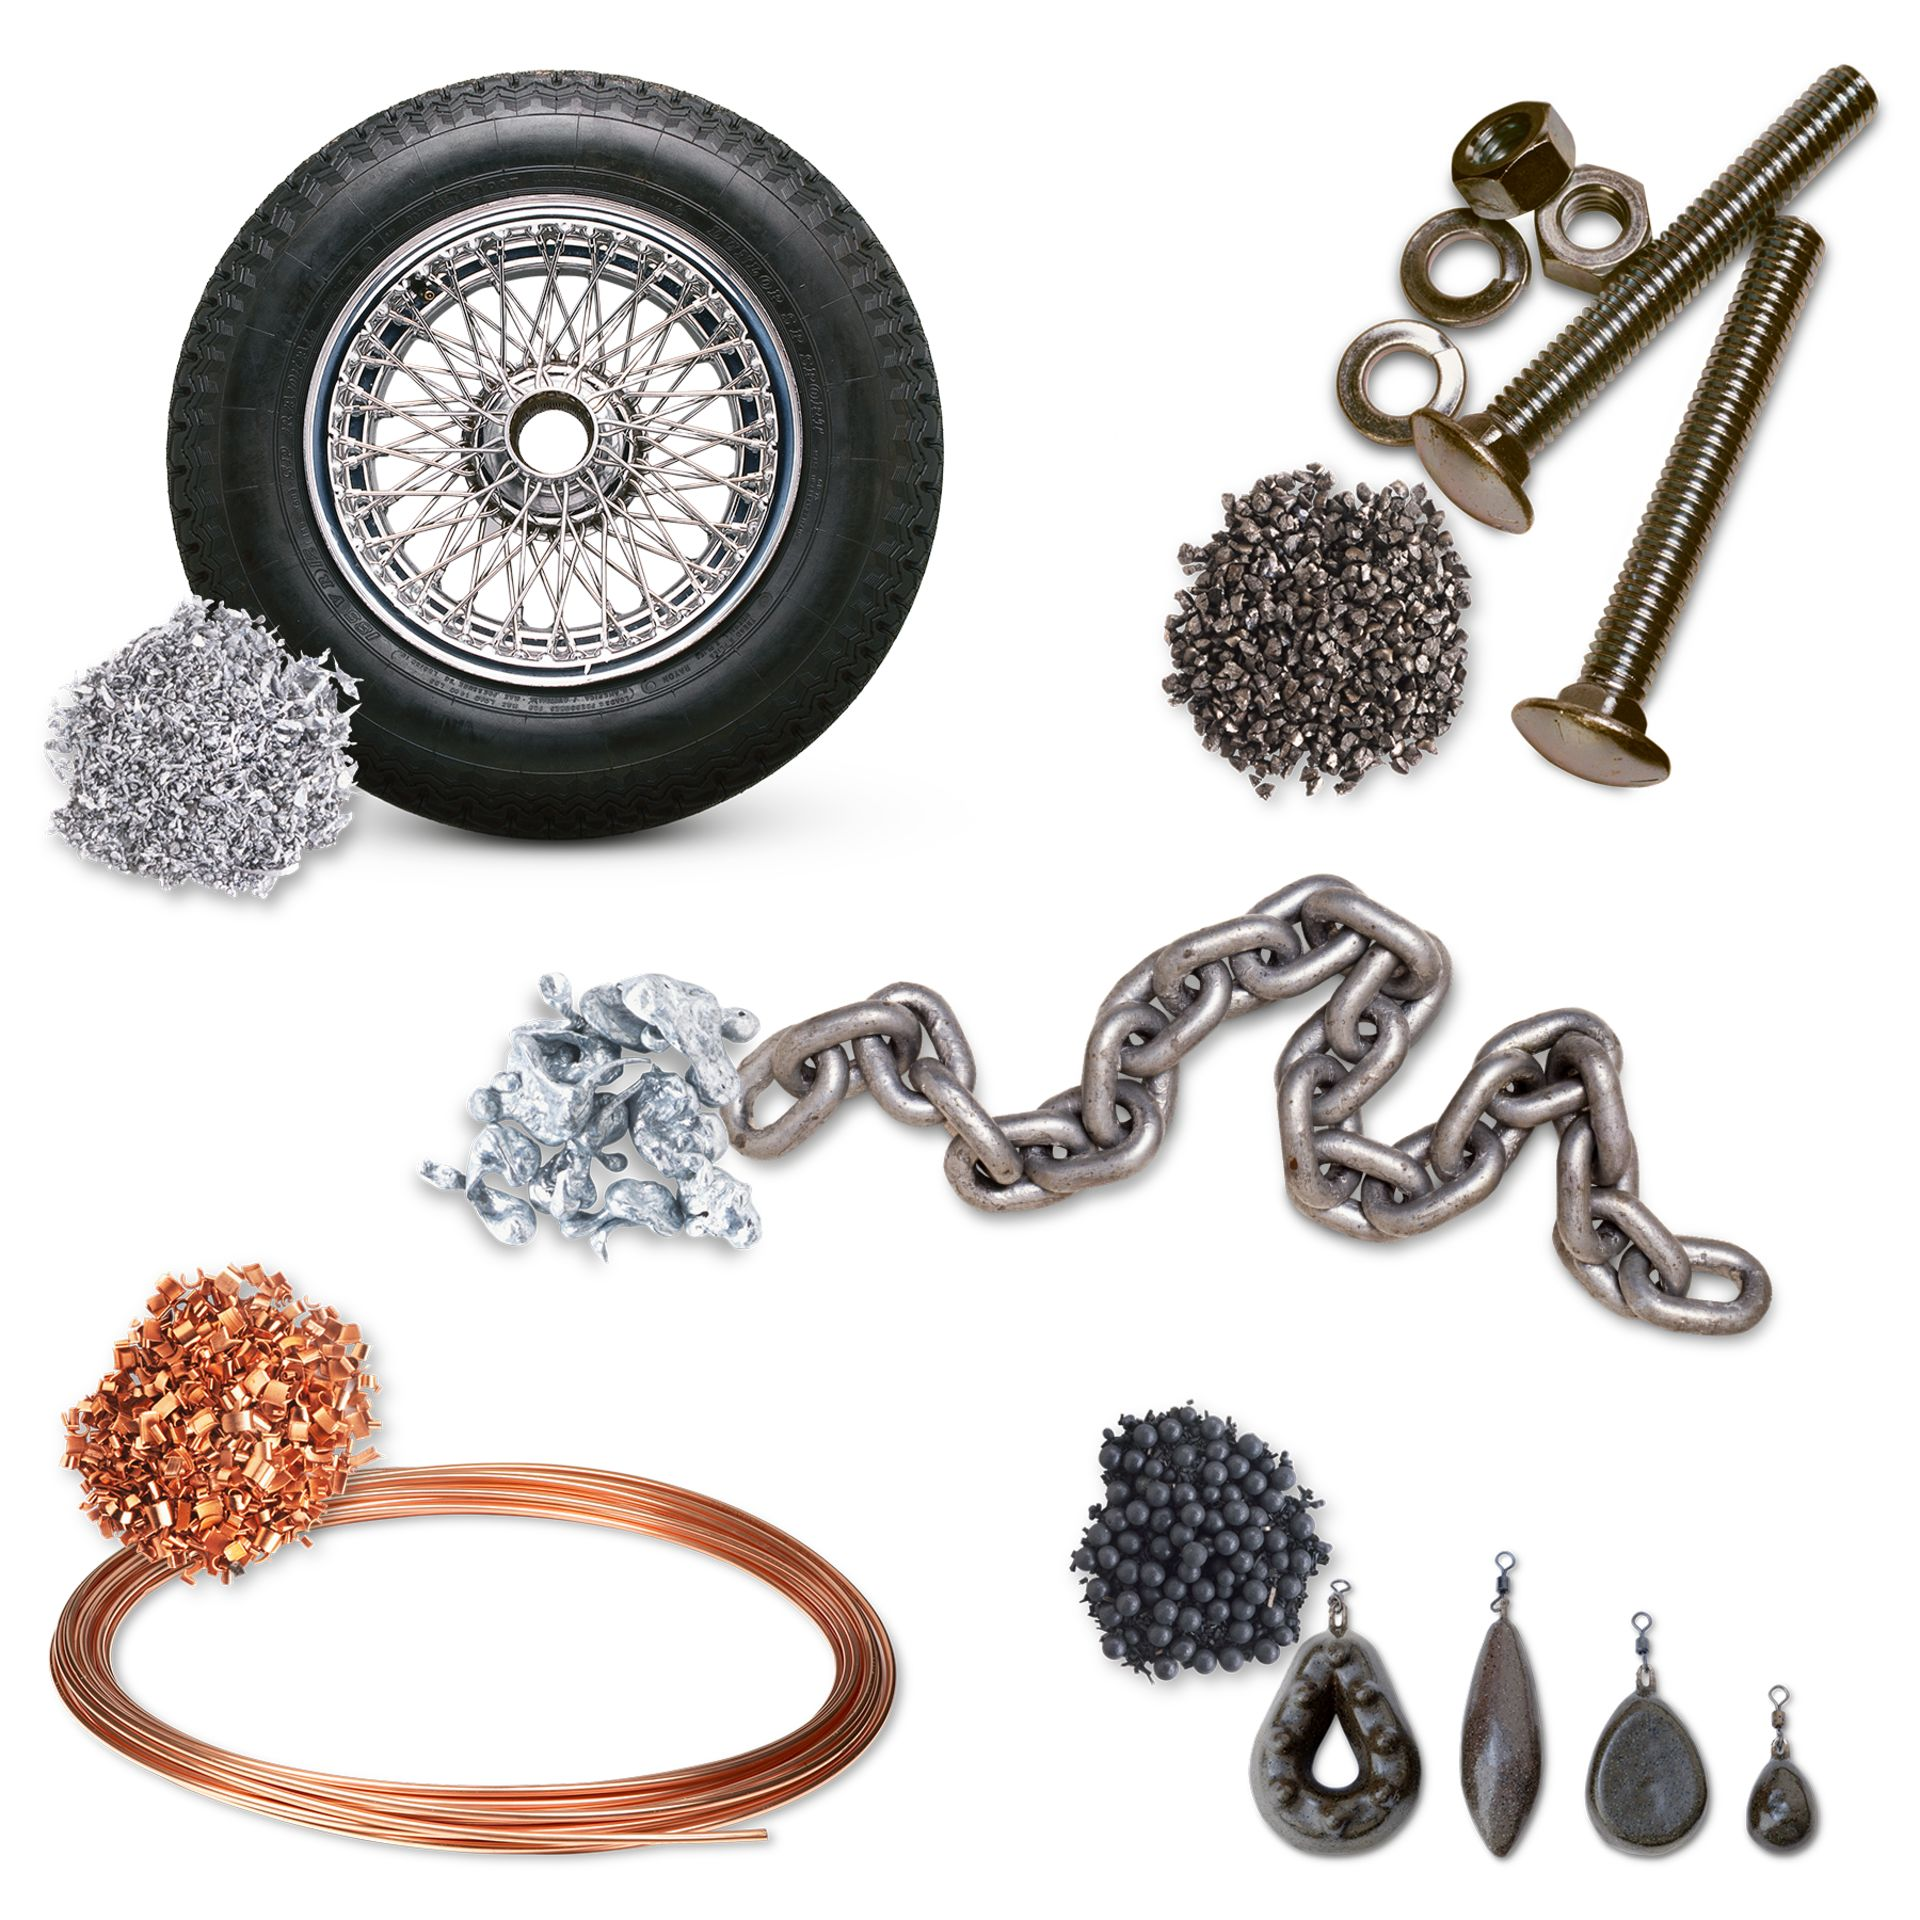 some articles made up of different alloys